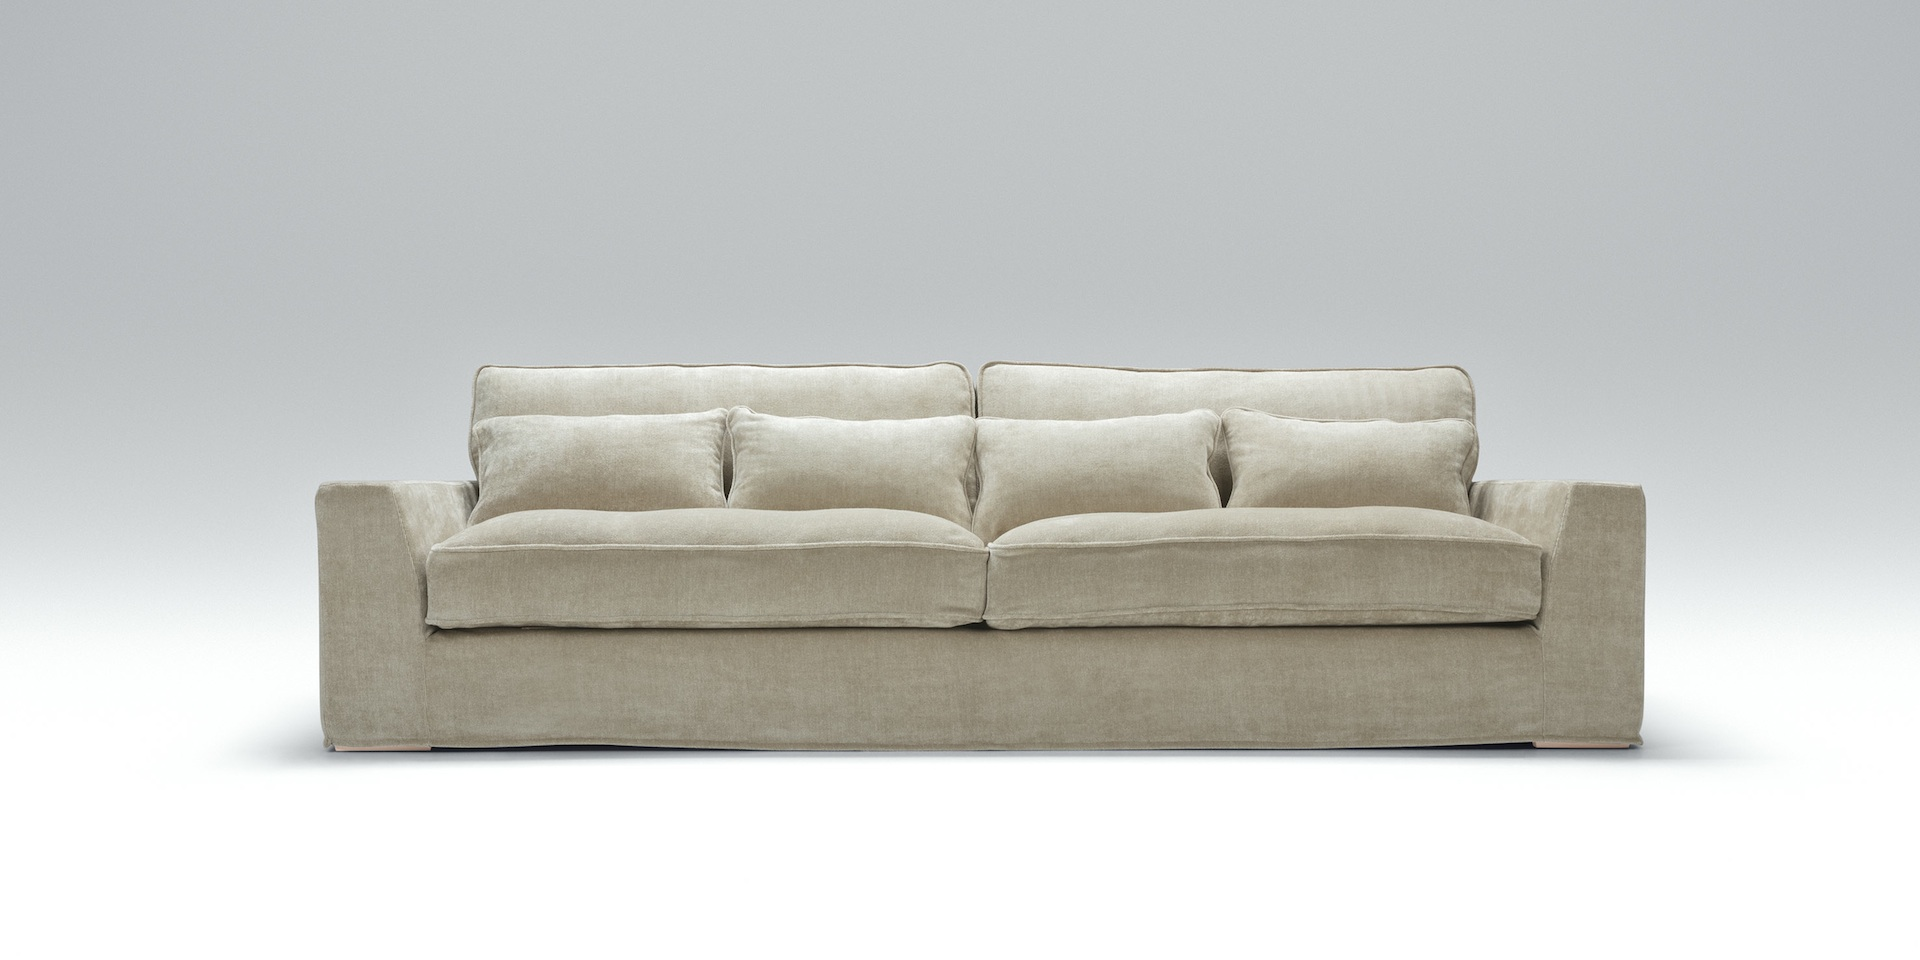 NEW_YORK_shadow_4seater_specchio6_beige_1